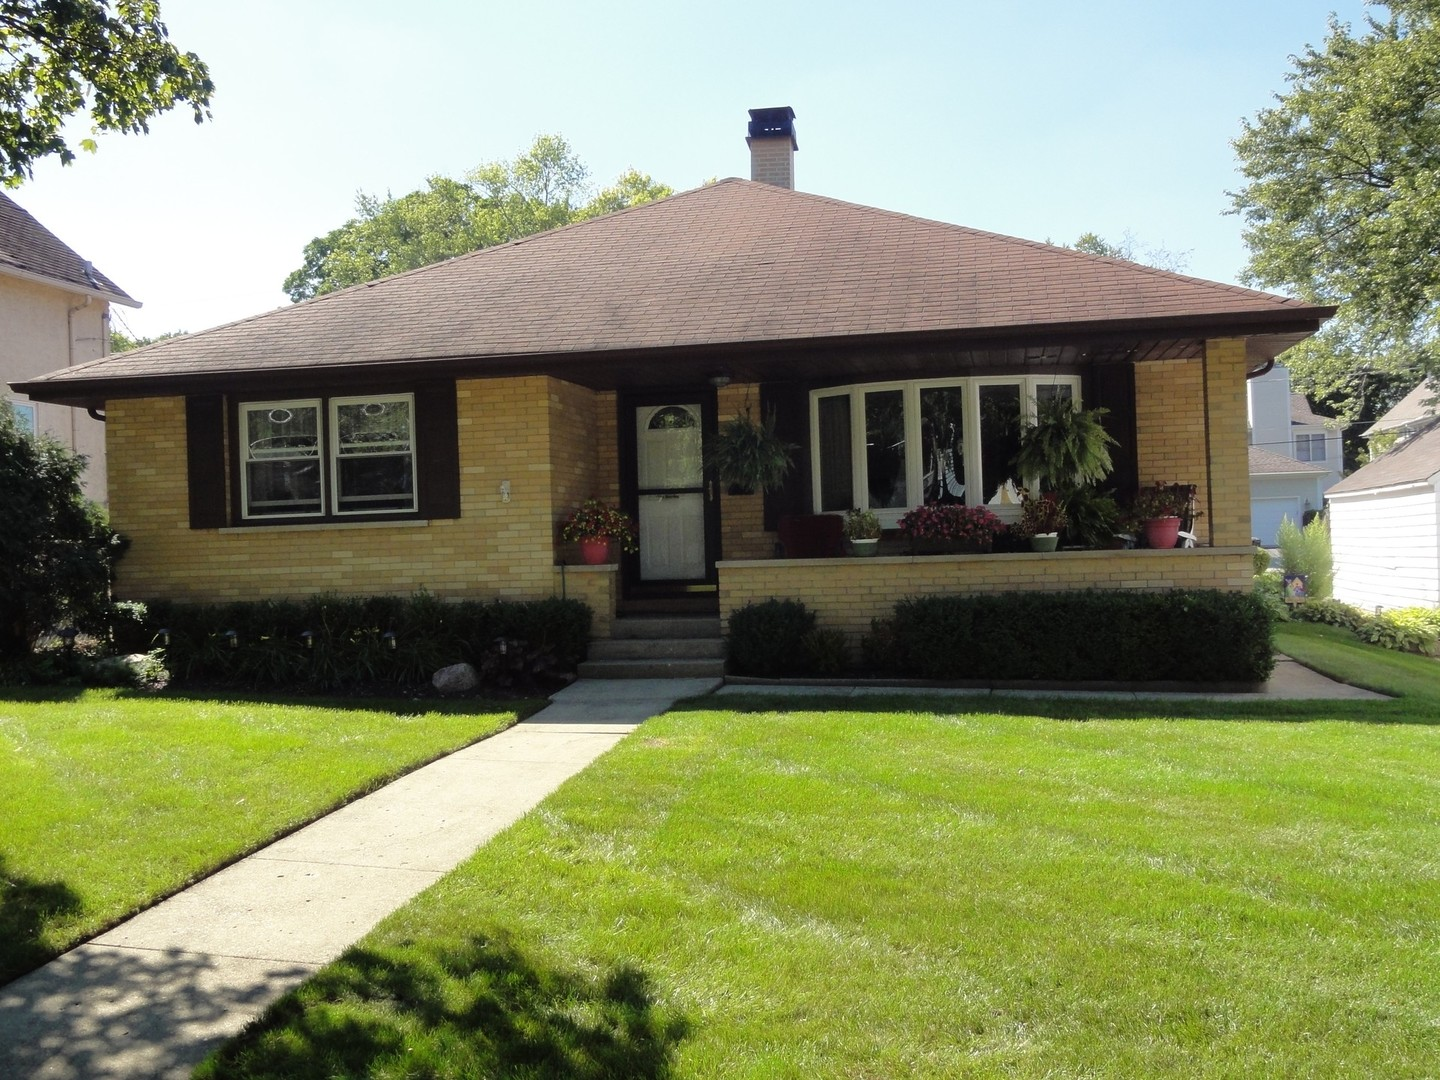 211 4th Street, Libertyville, Illinois 60048